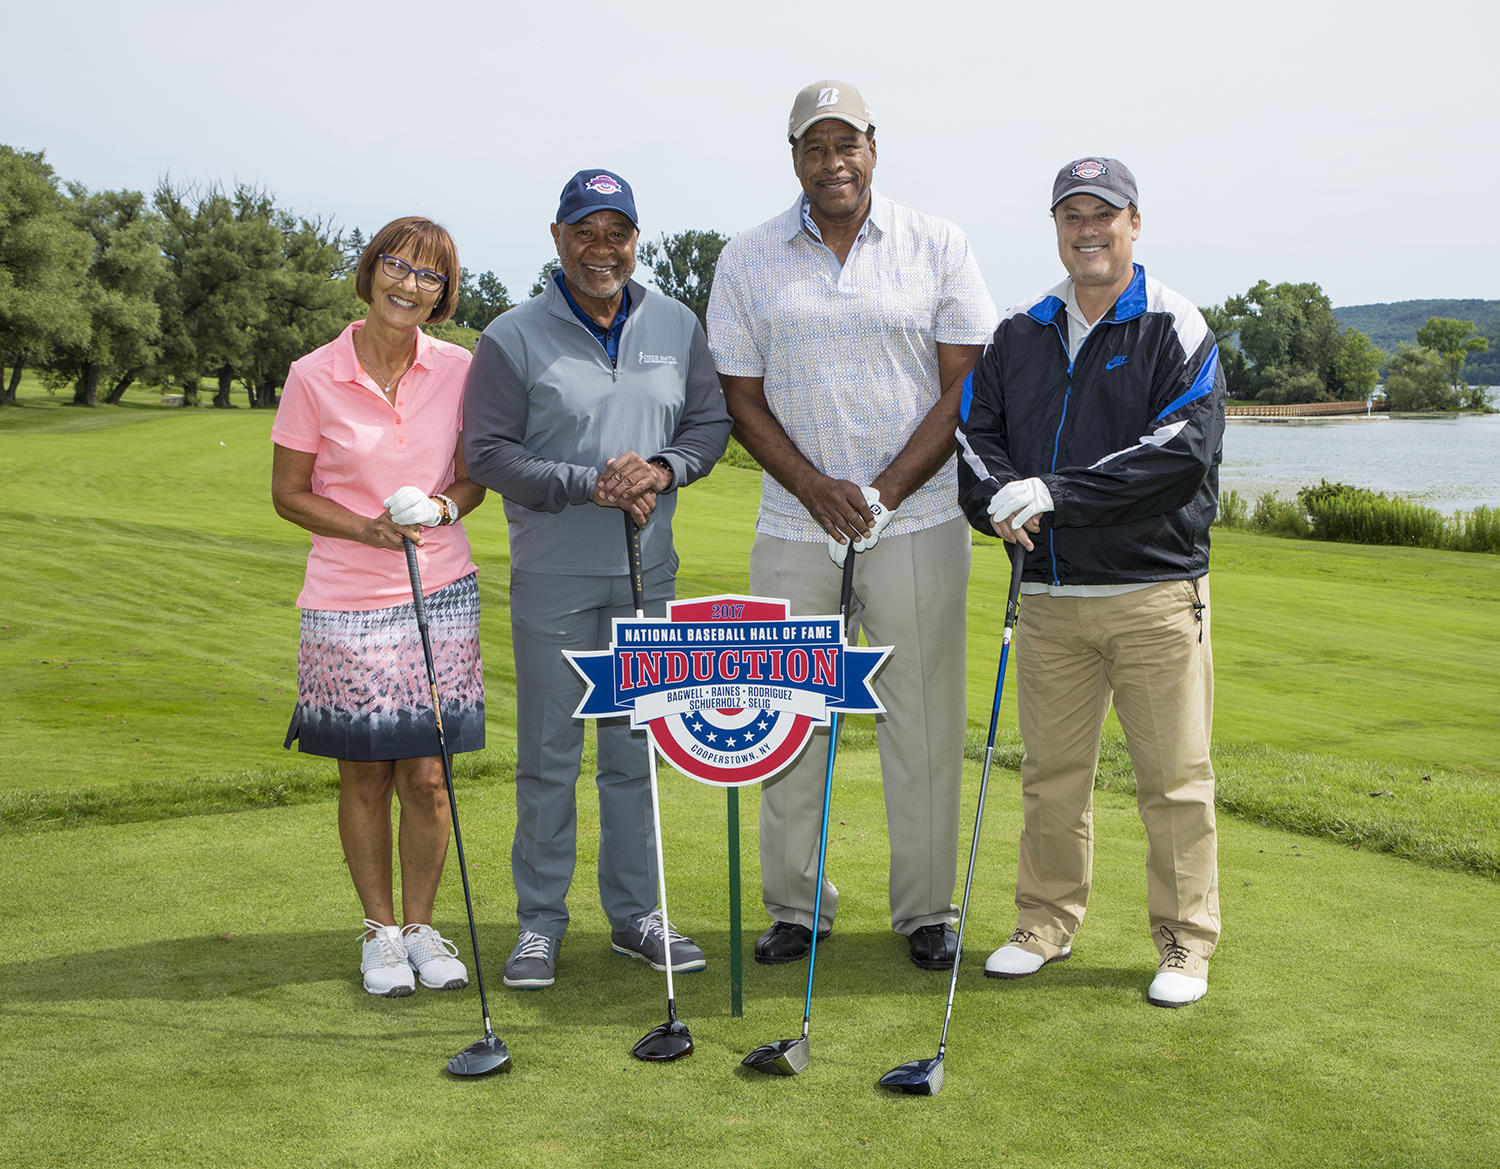 (Pictured from left to right): Debbie Dennler, Hall of Famer Ozzie Smith, Hall of Famer Dave Winfield and Randy Grossman comprised the winning team at the at the Hall of Fame Golf Tournament on Saturday at the Leatherstocking Golf Course in Cooperstown. (Milo Stewart Jr. / National Baseball Hall of Fame and Museum)